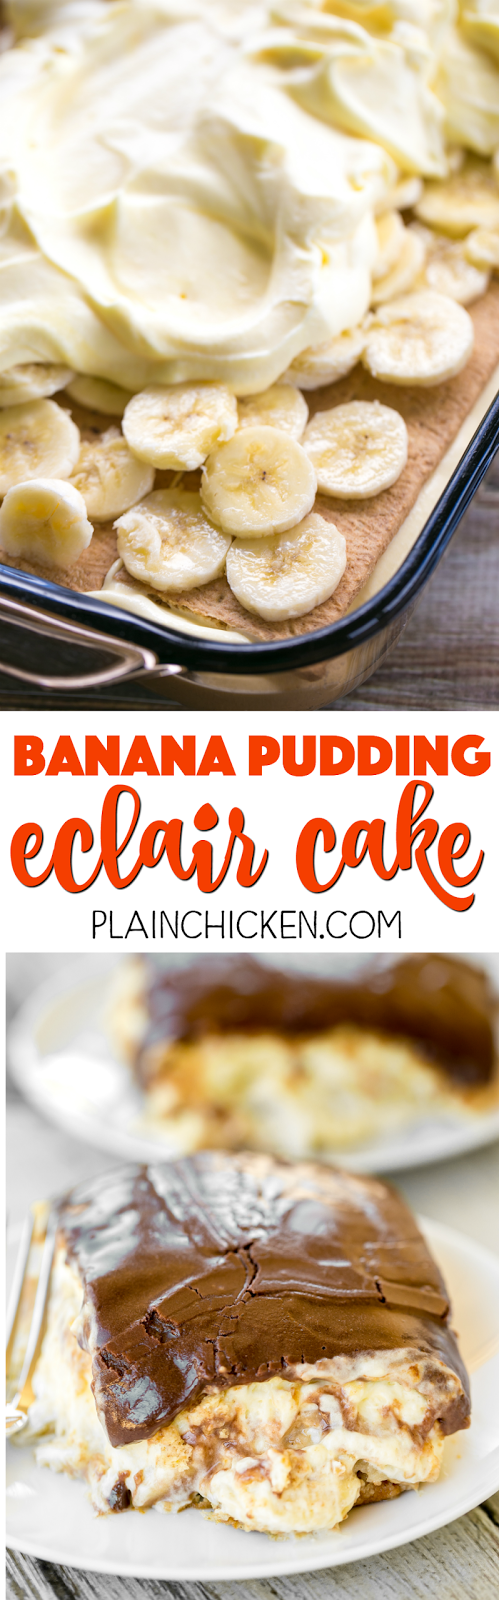 Banana Pudding Eclair Cake - I am in LOVE with this easy no-bake dessert. Great for potlucks, cookouts and Easter! Graham crackers, vanilla pudding, banana pudding, cool whip, bananas, chocolate frosting. Can make ahead and refrigerate before serving. Everyone RAVES about this yummy dessert recipe!!